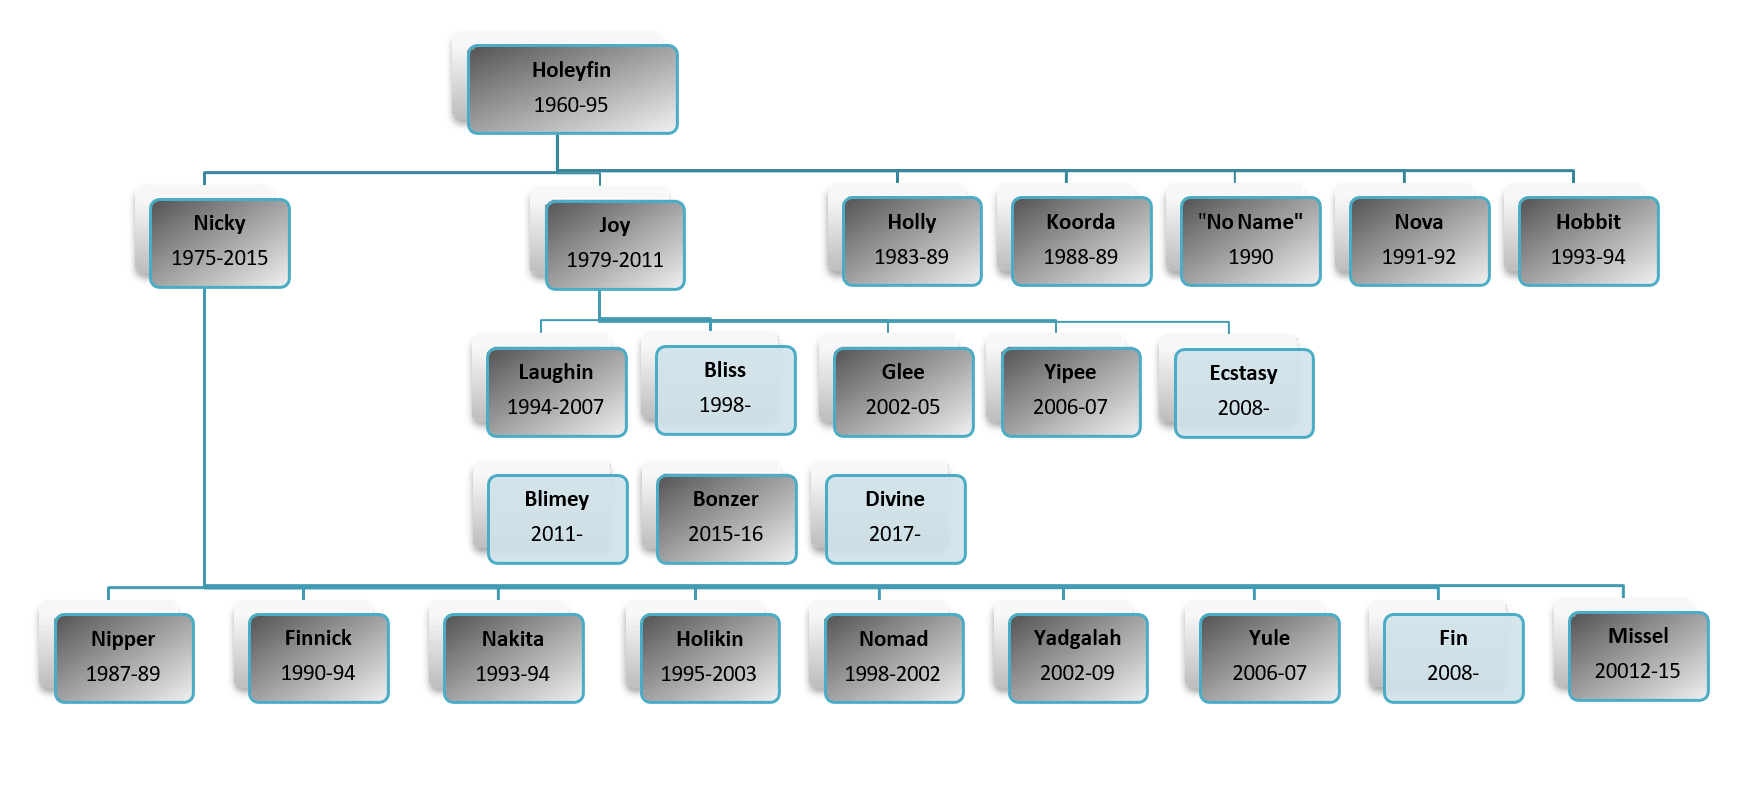 Holeyfin Lineage